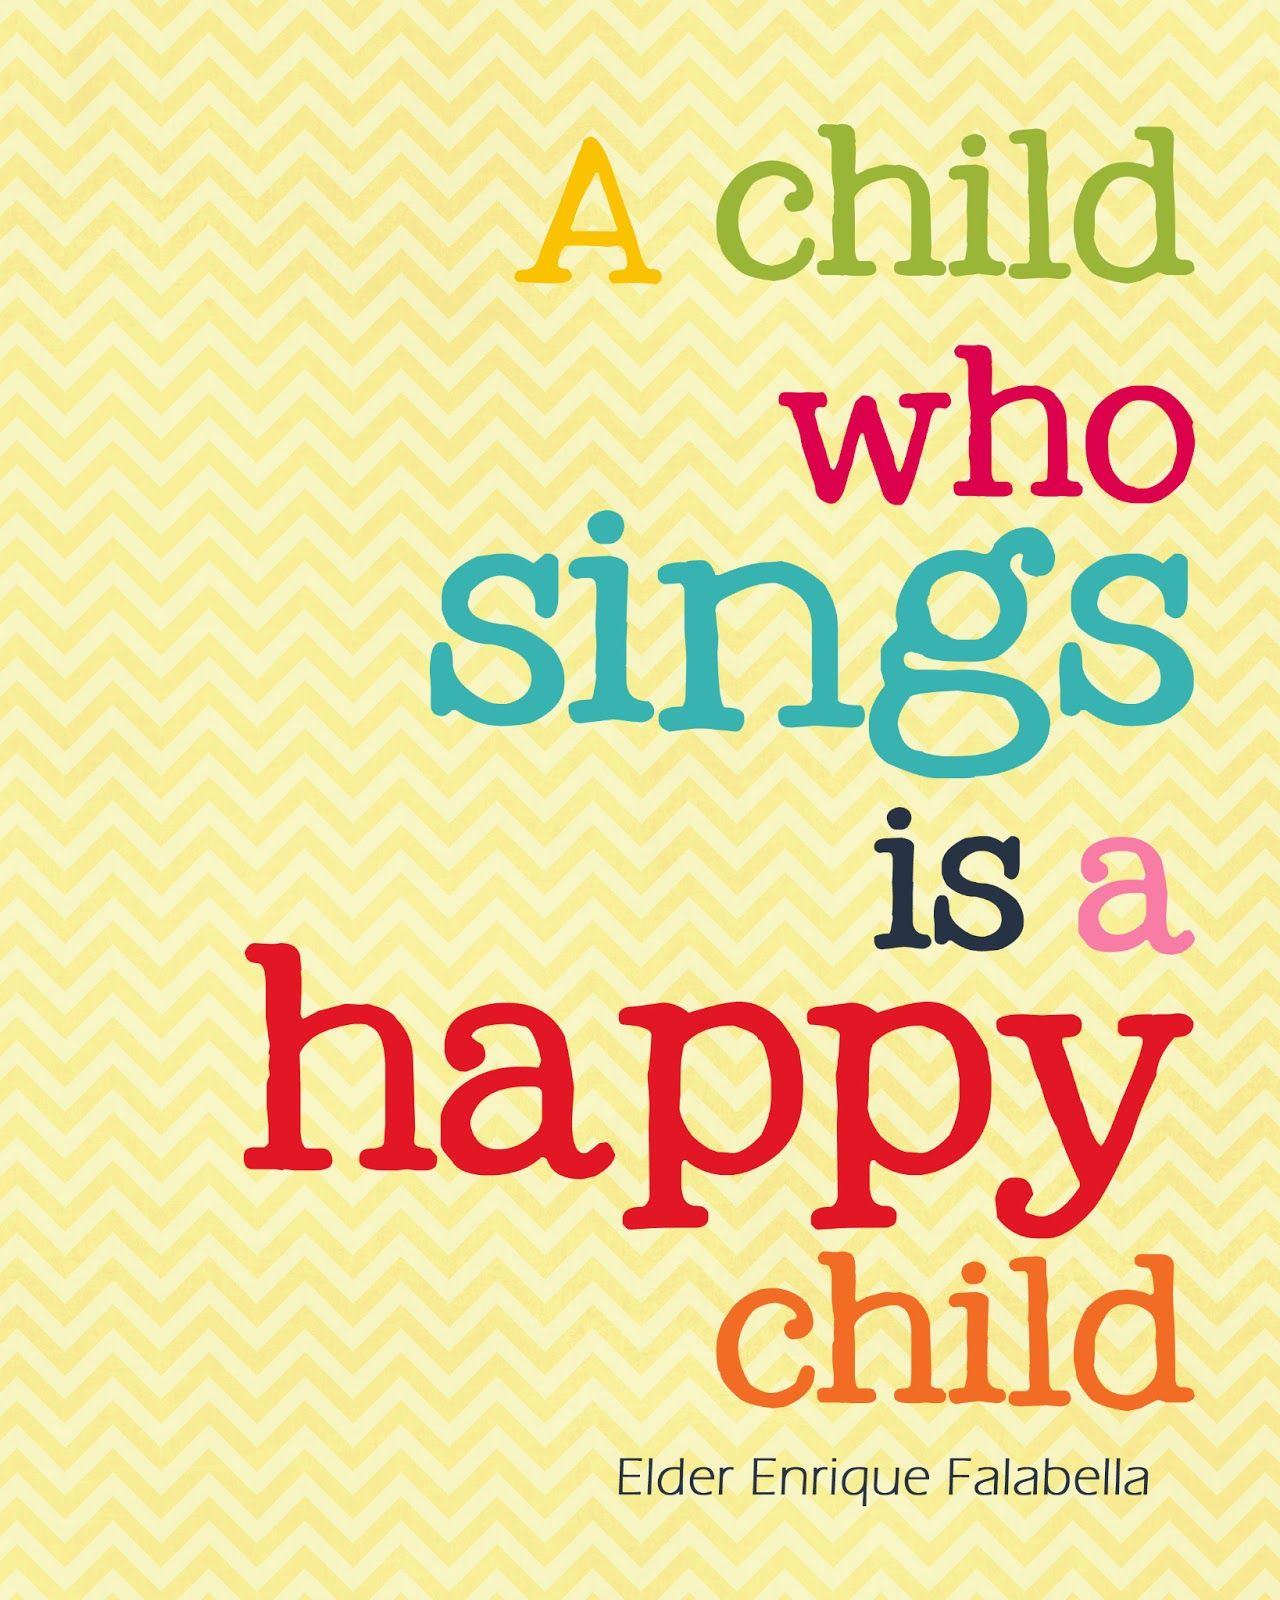 A child who sings is a happy child music quote